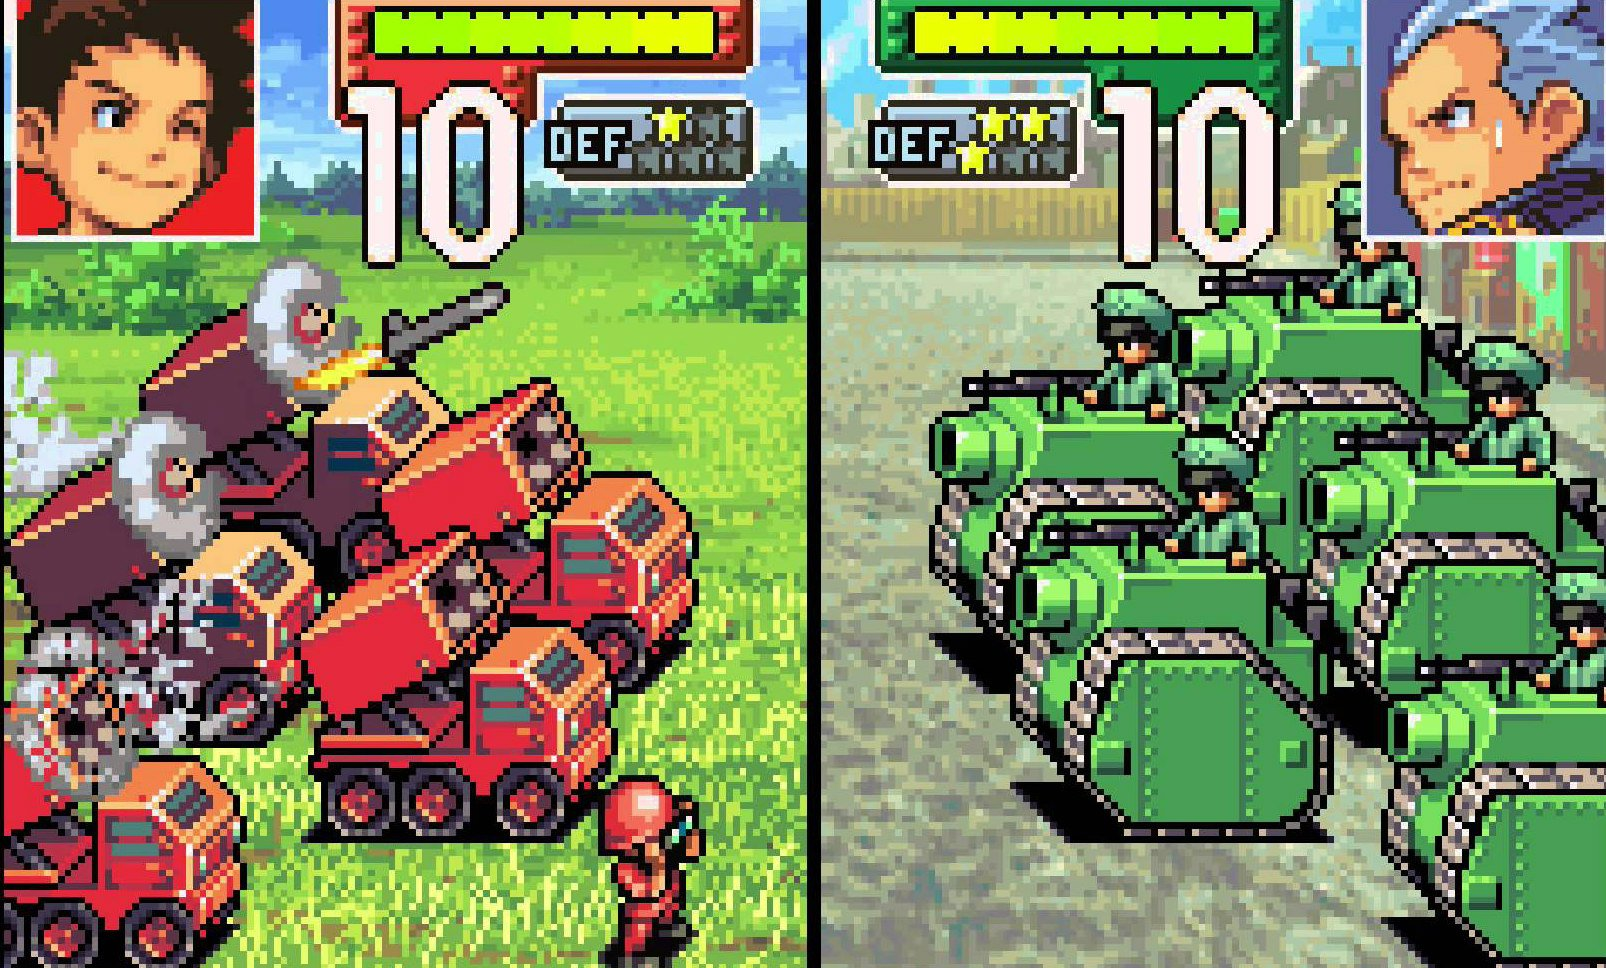 Advance Wars producer says he'd 'love' to create another, but will miss relationship system of Fire Emblem screenshot